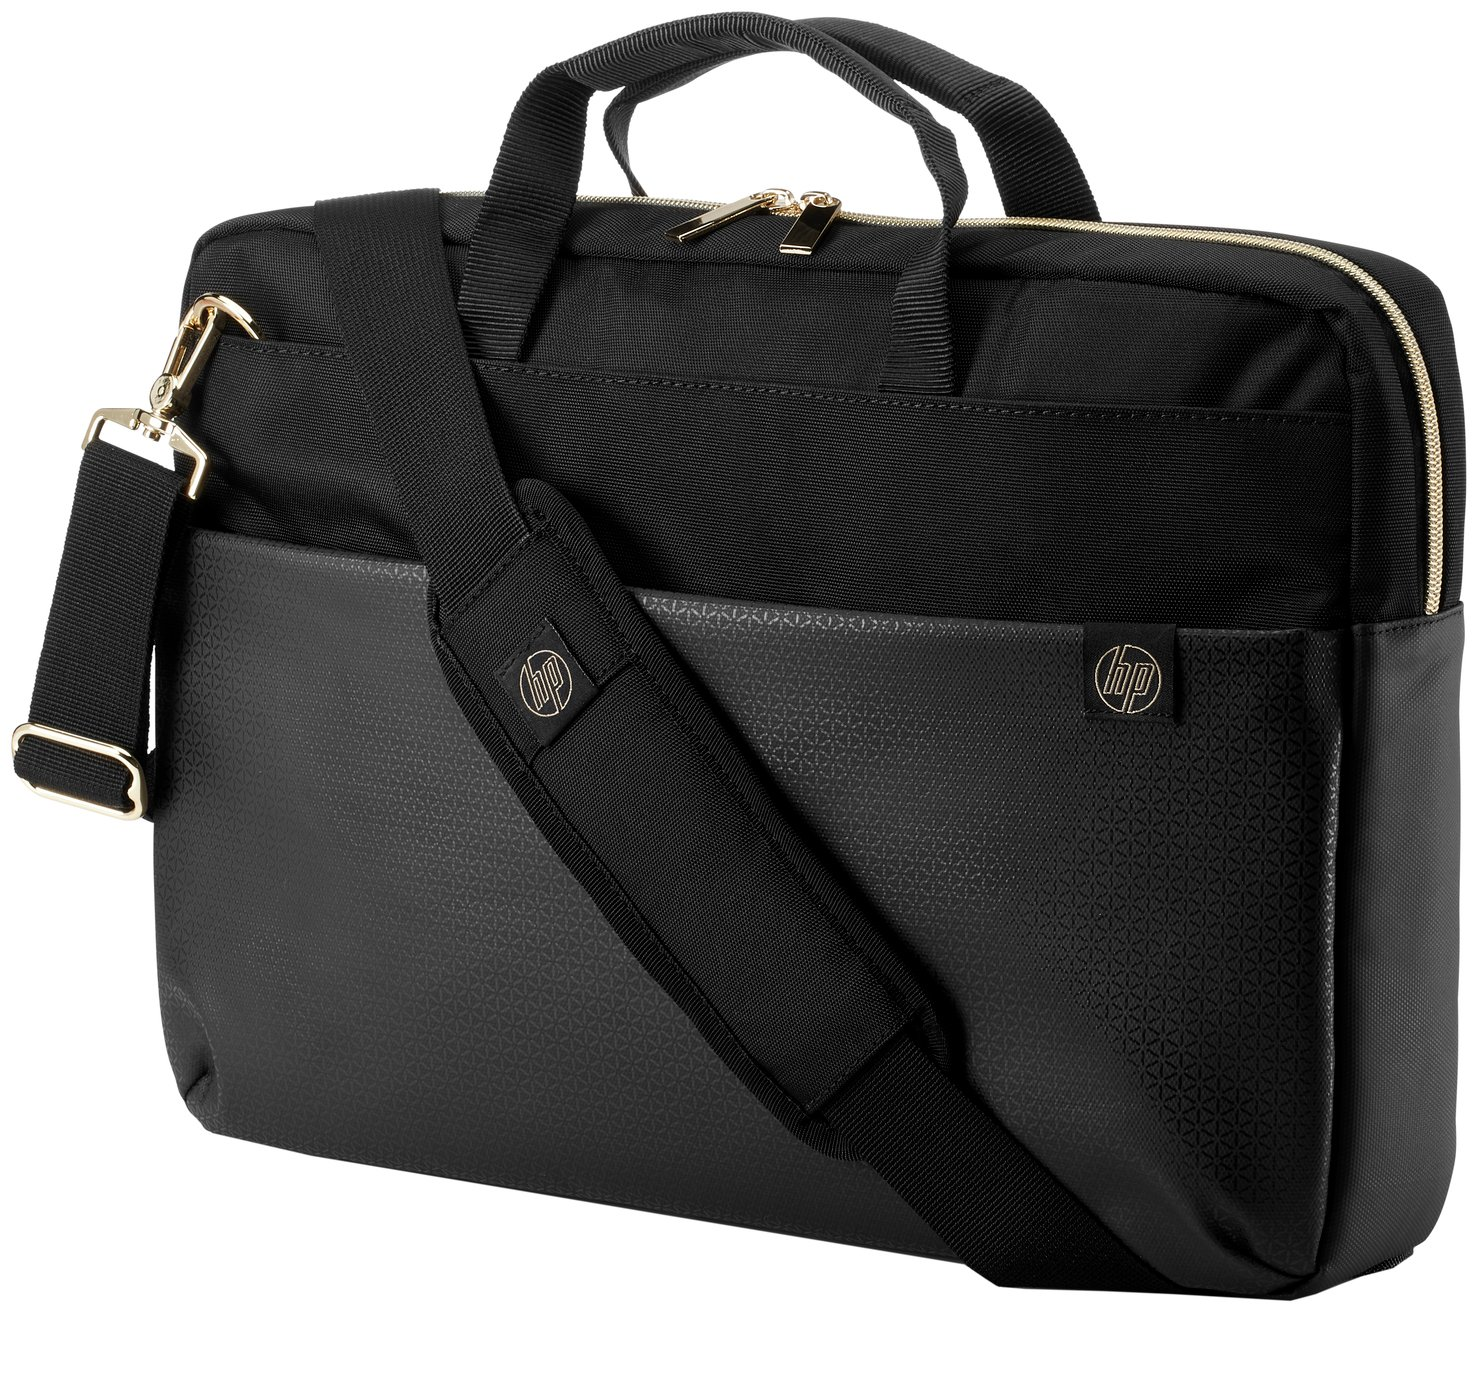 HP Duotone 15.6 Inch Laptop Briefcase - Gold and Black